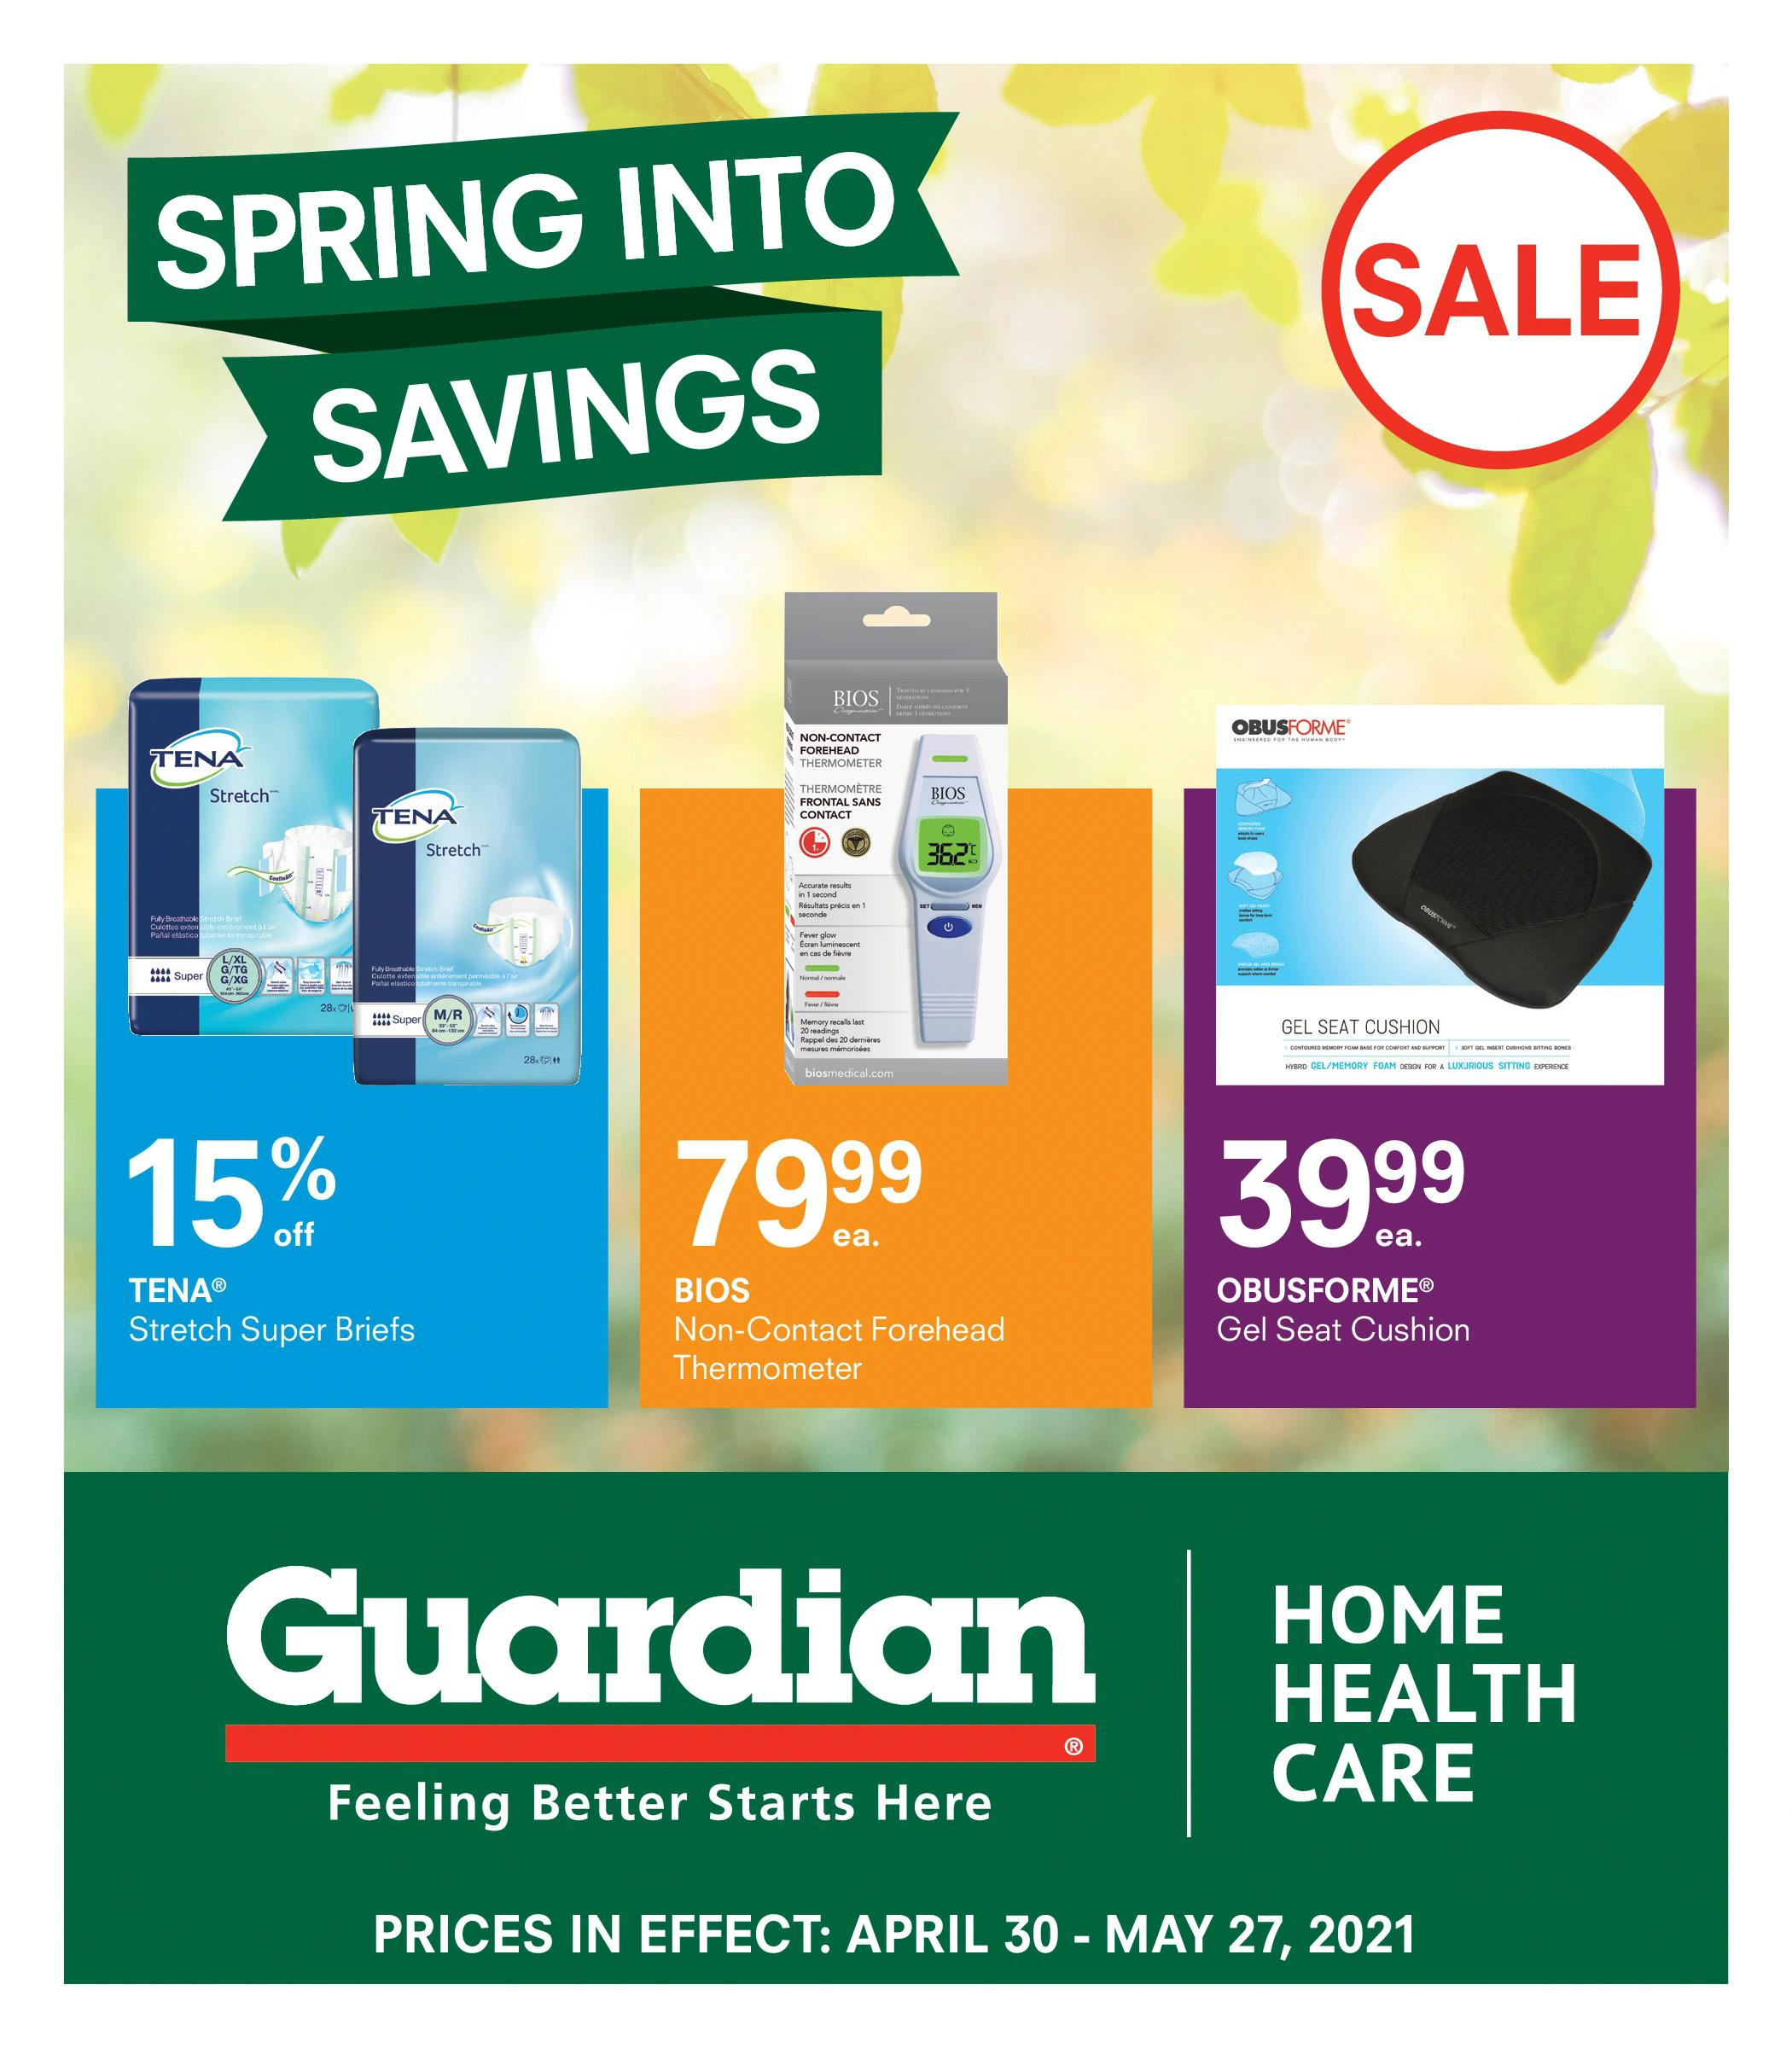 Guardian IDA Pharmacies - Spring into Savings